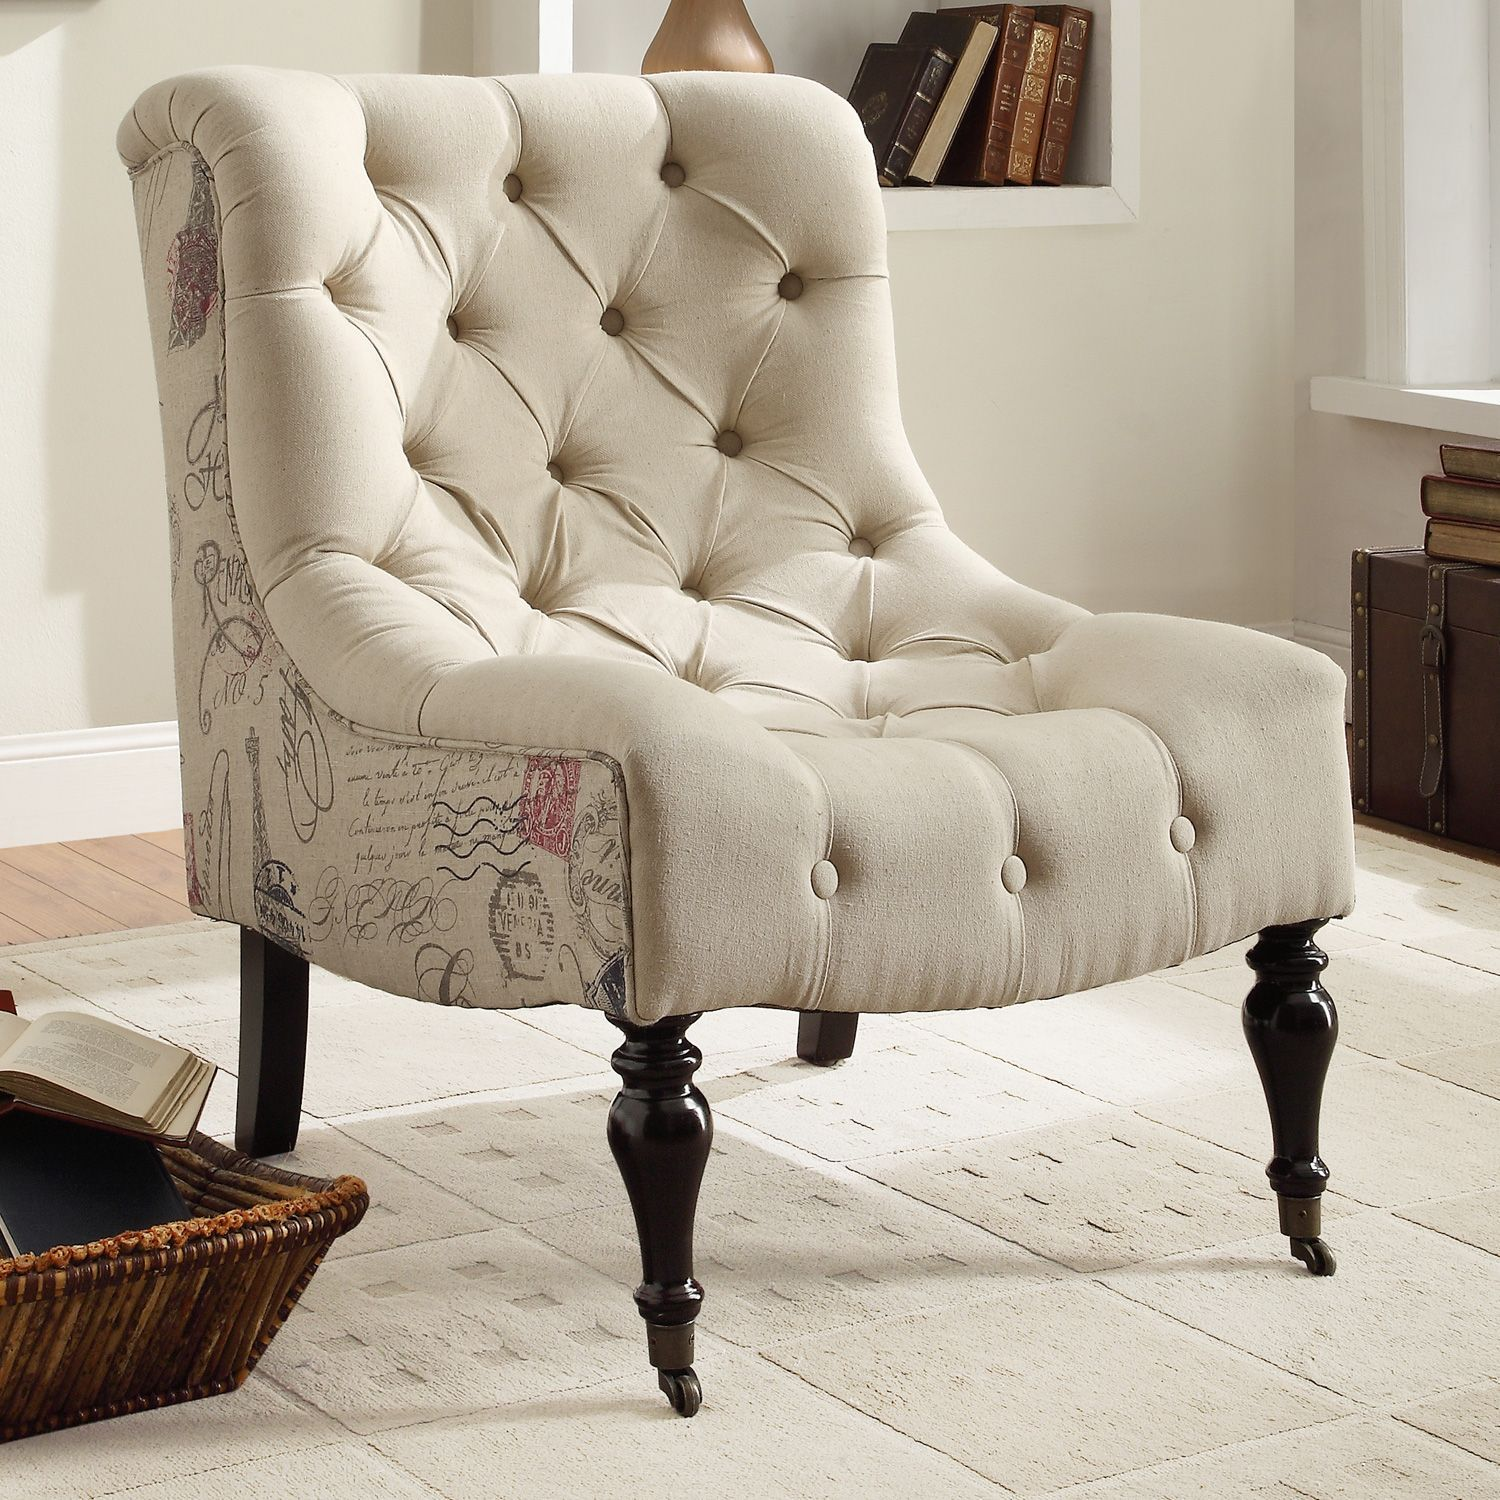 accent chairs under 150 2 chair cover rentals newark nj anya tufted 199 i think this is the one